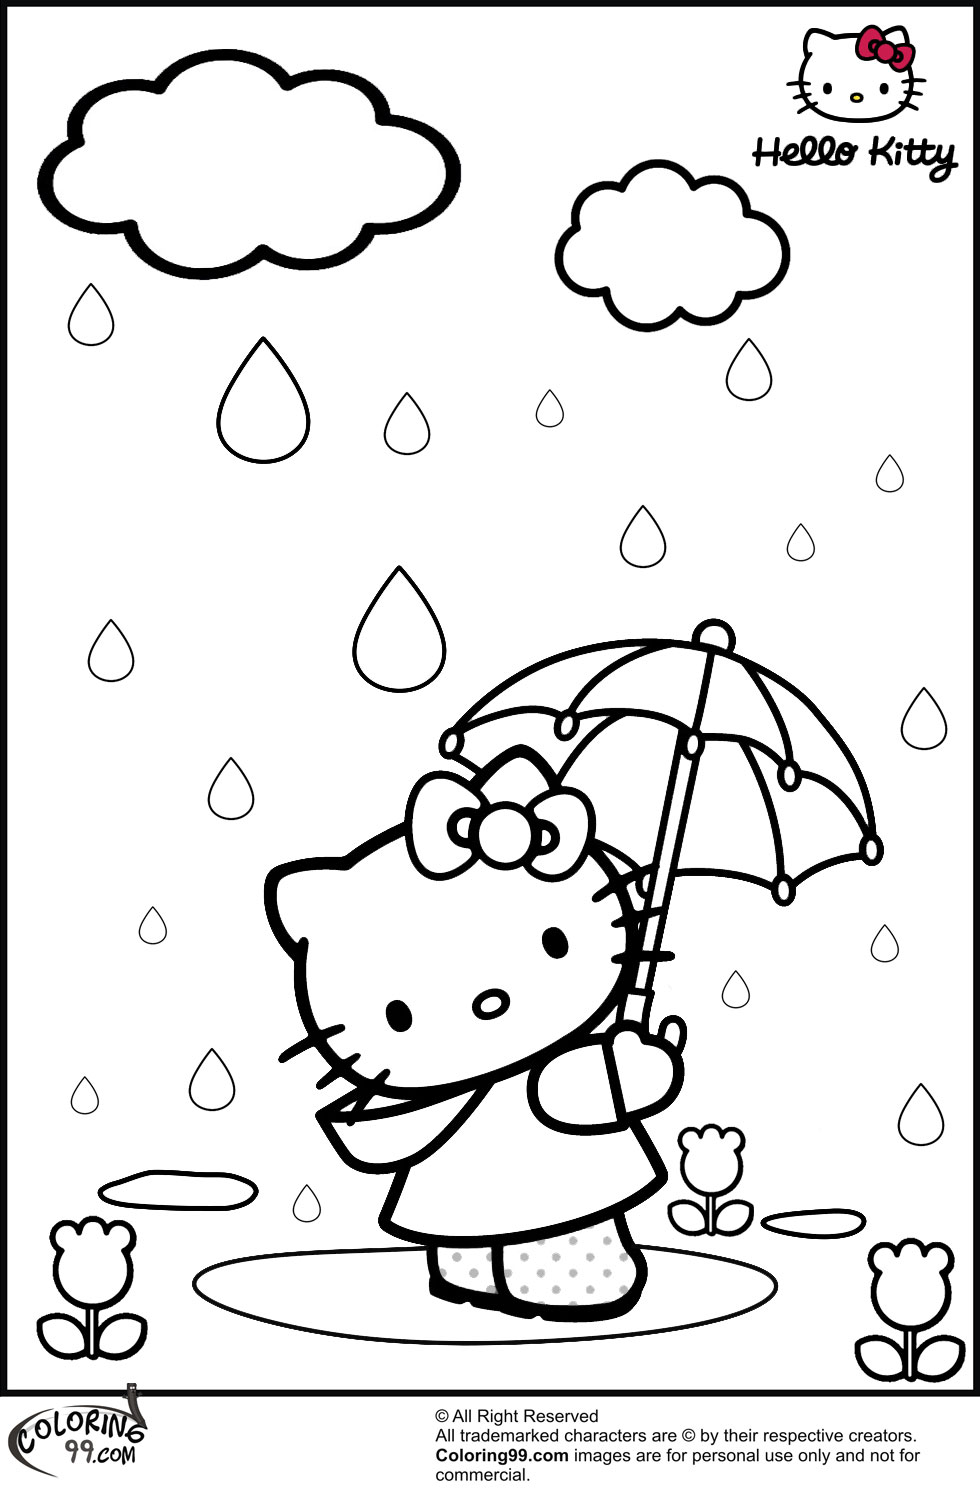 a coloring pages of hello kitty | September 2013 | Team colors